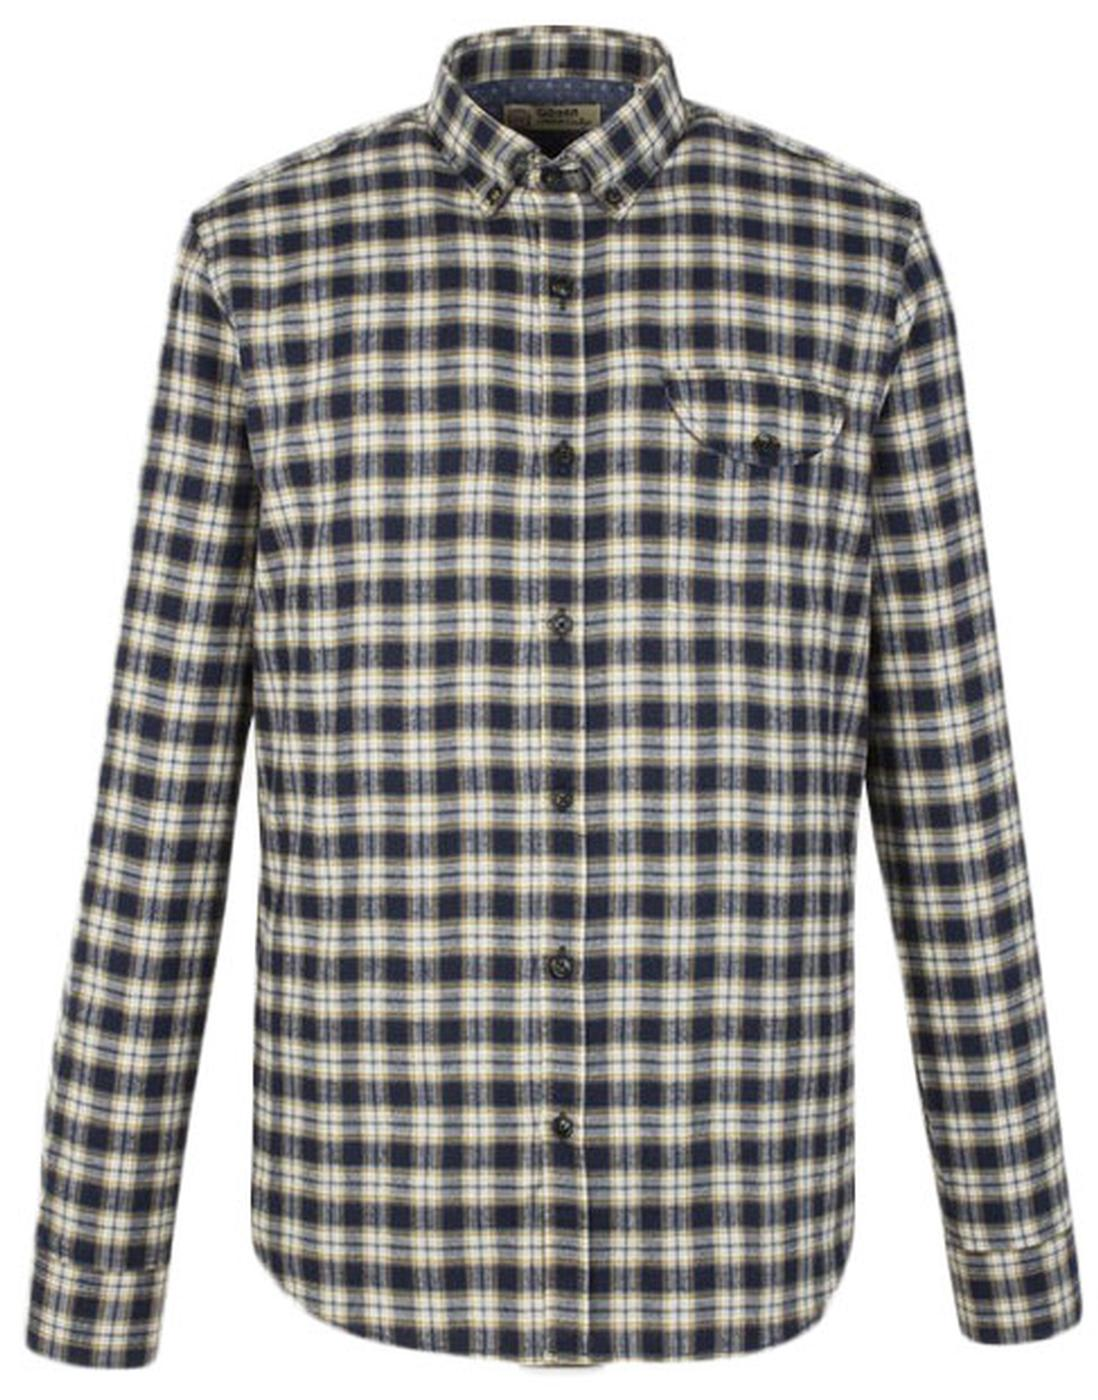 GIBSON LONDON Mod Ivy league BD Check Shirt (M)